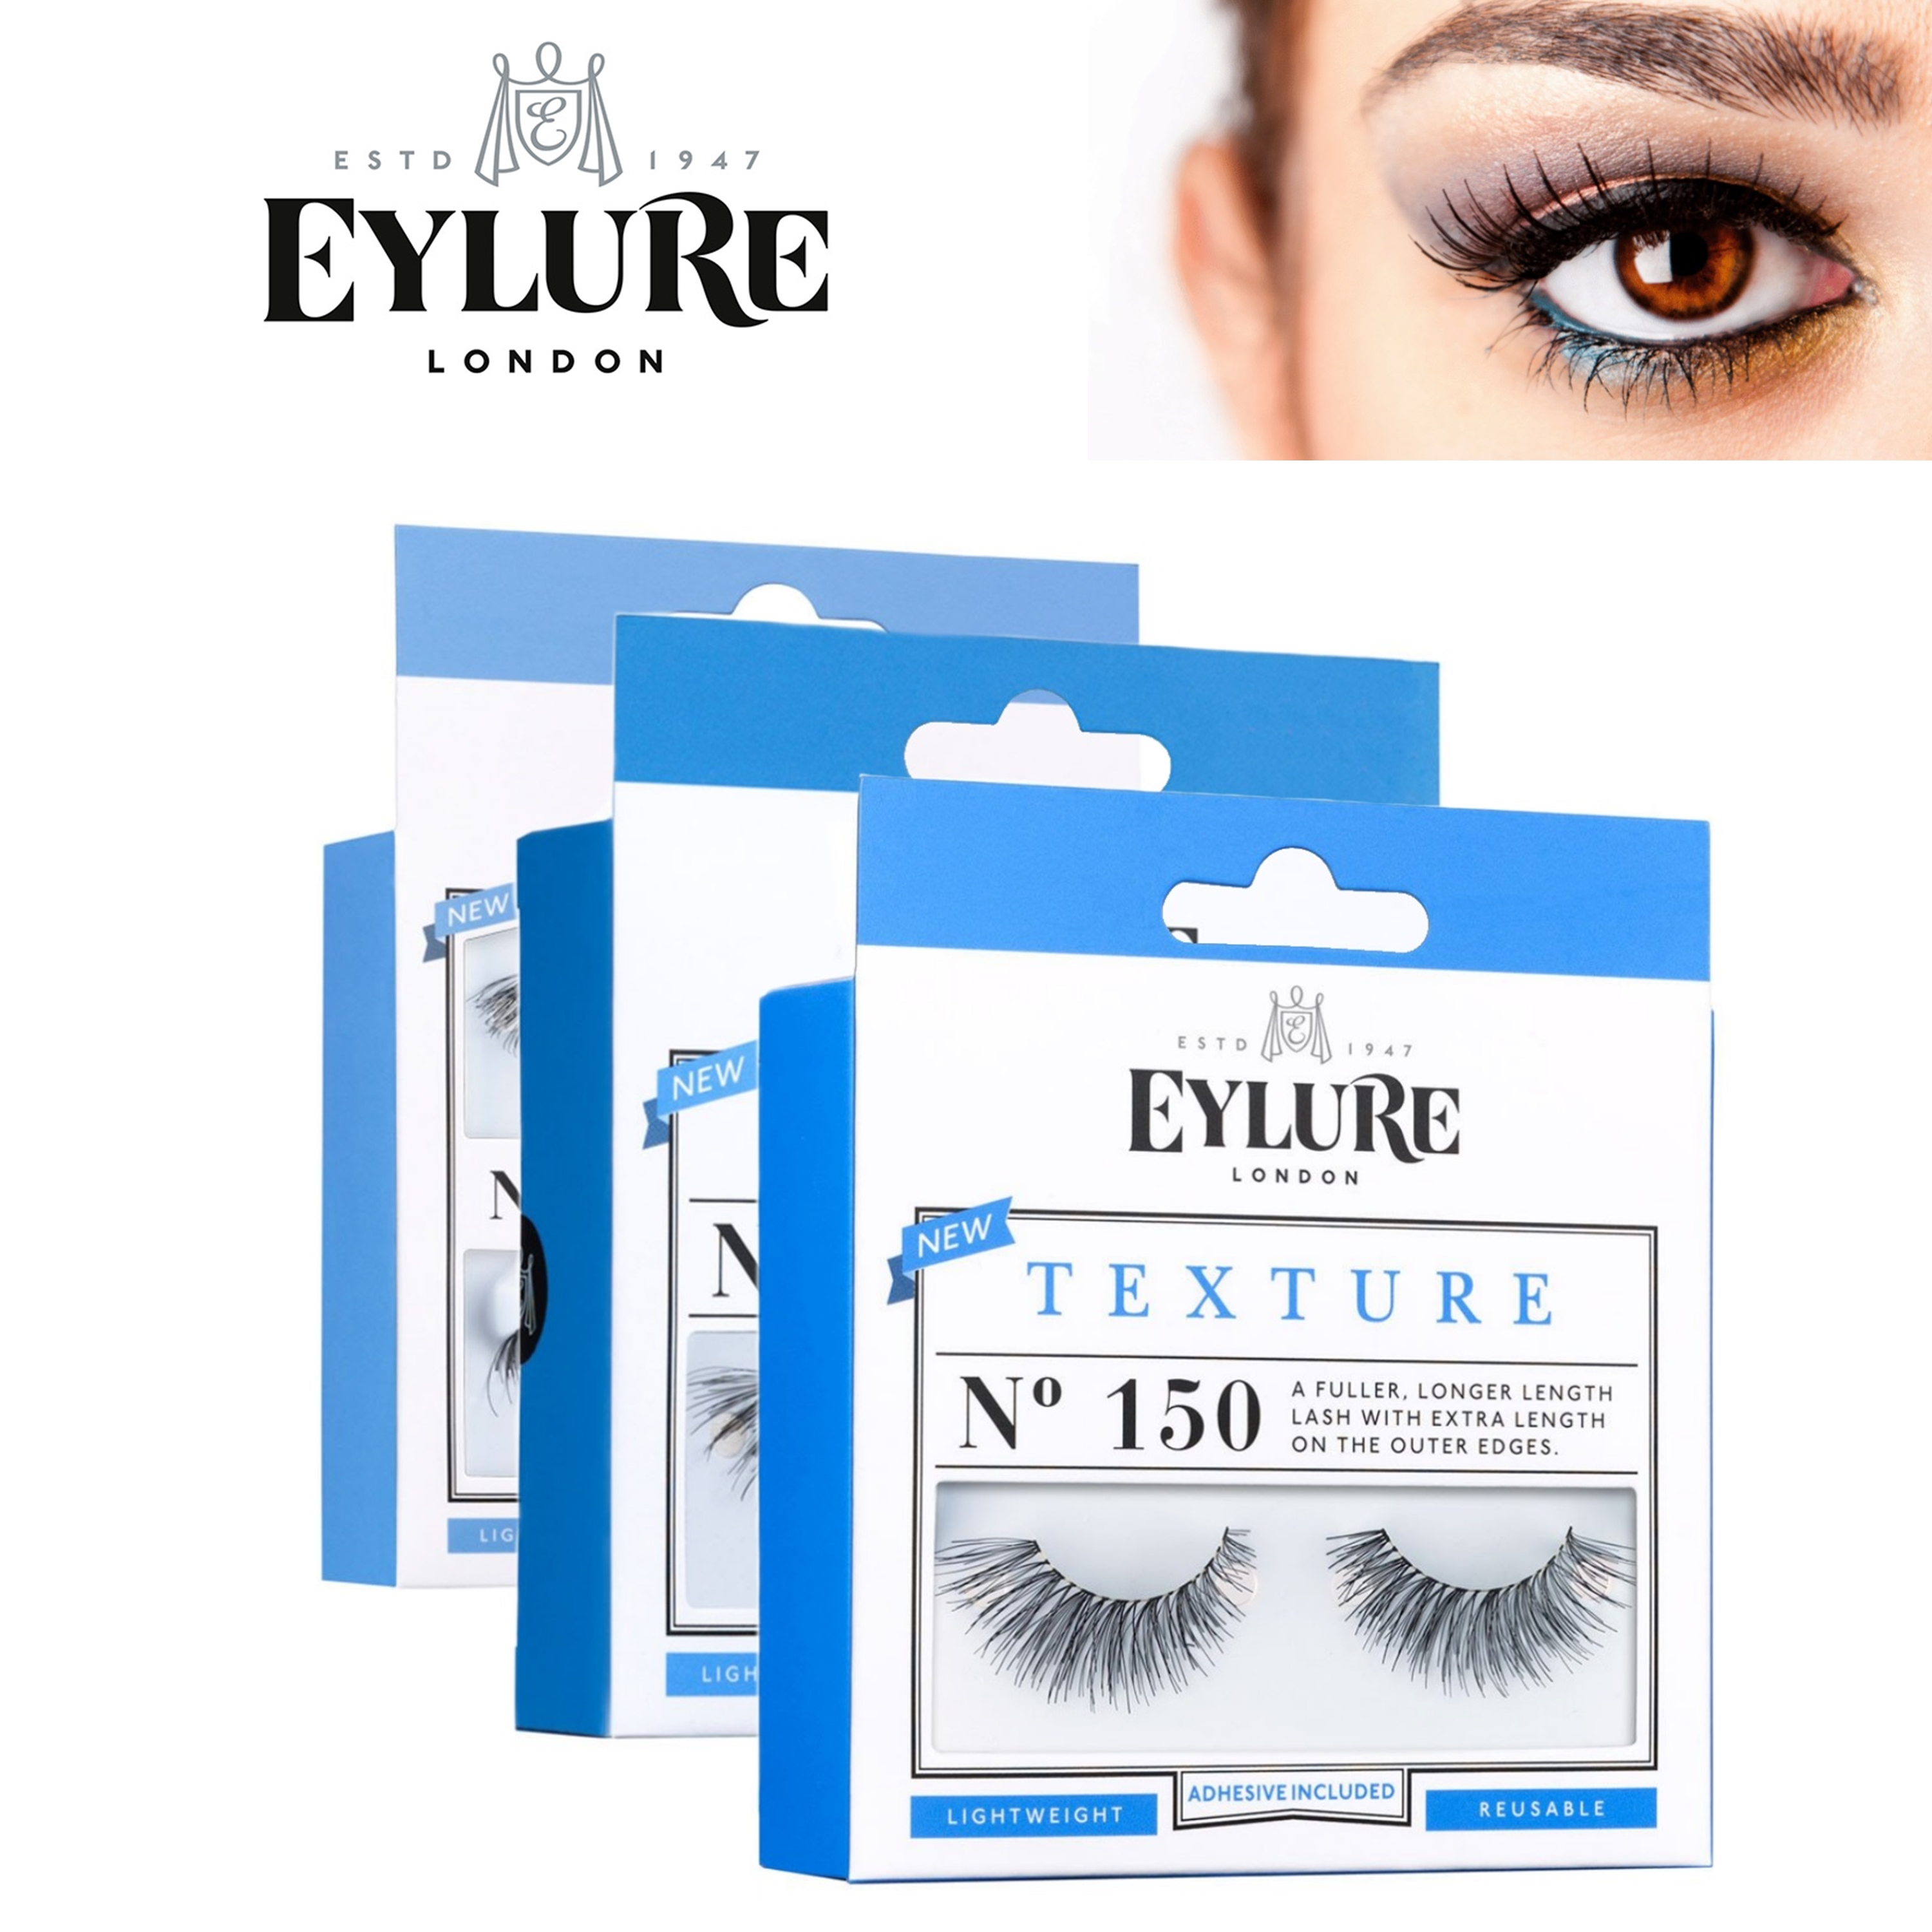 Eylure Texture Lashes Ladies Reusable Adhesive Strip Volume False Eyelashers